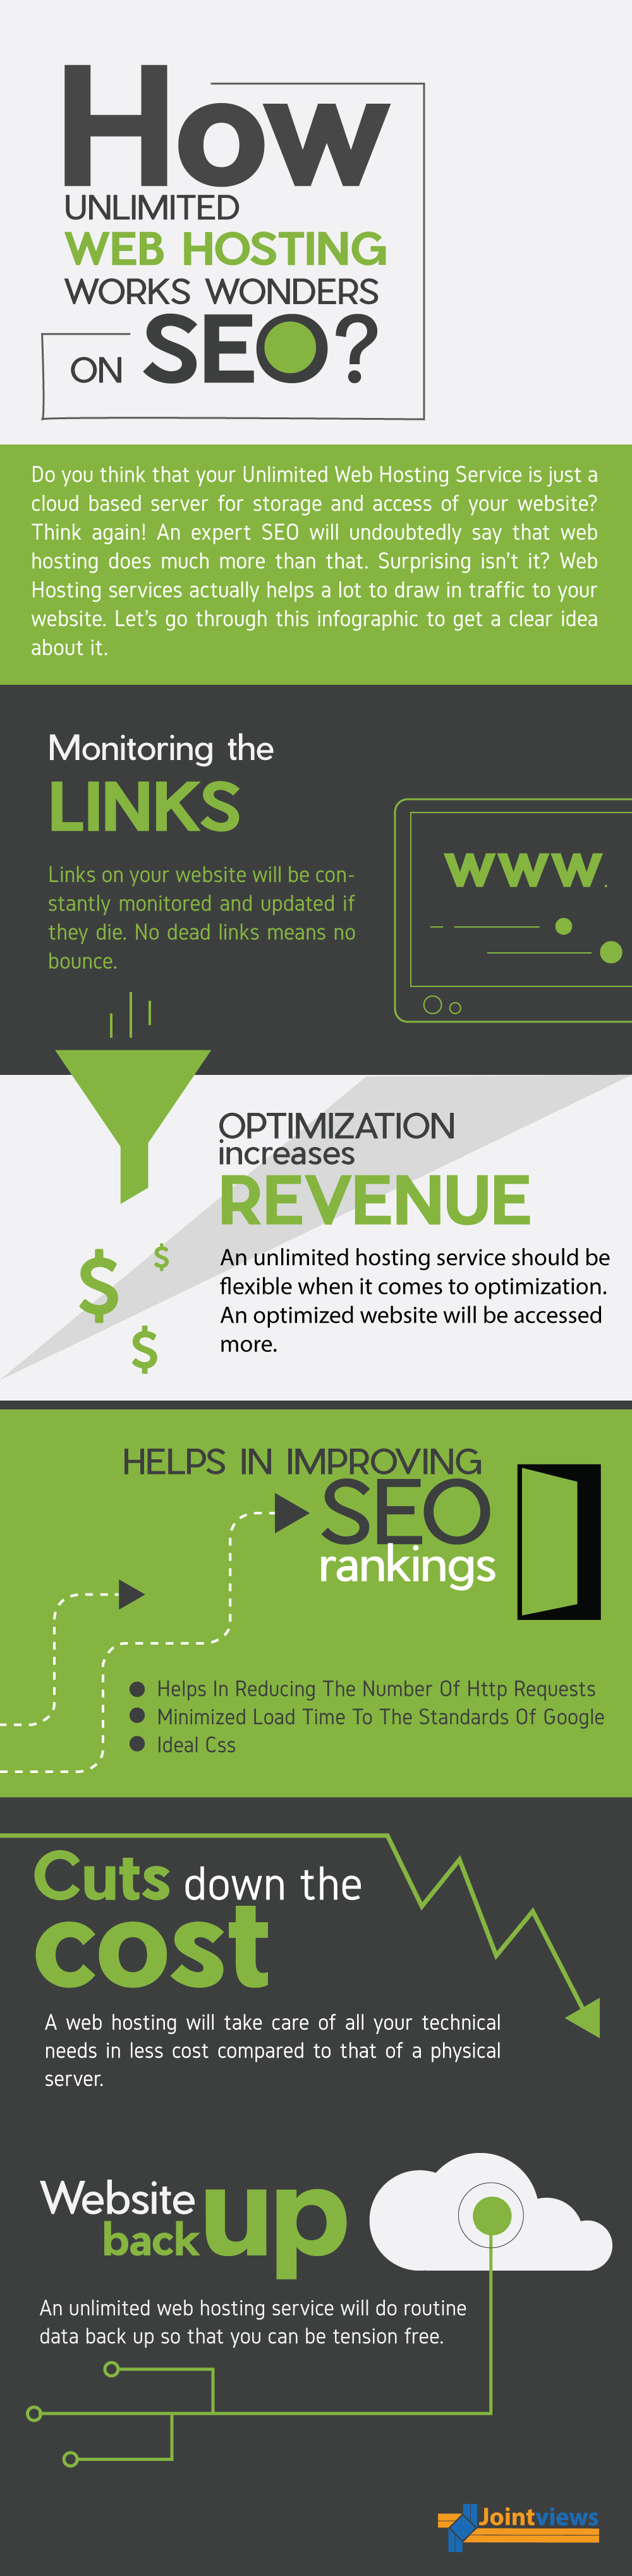 how-unlimited-web-hosting--works-wonders-on-seo-infographic